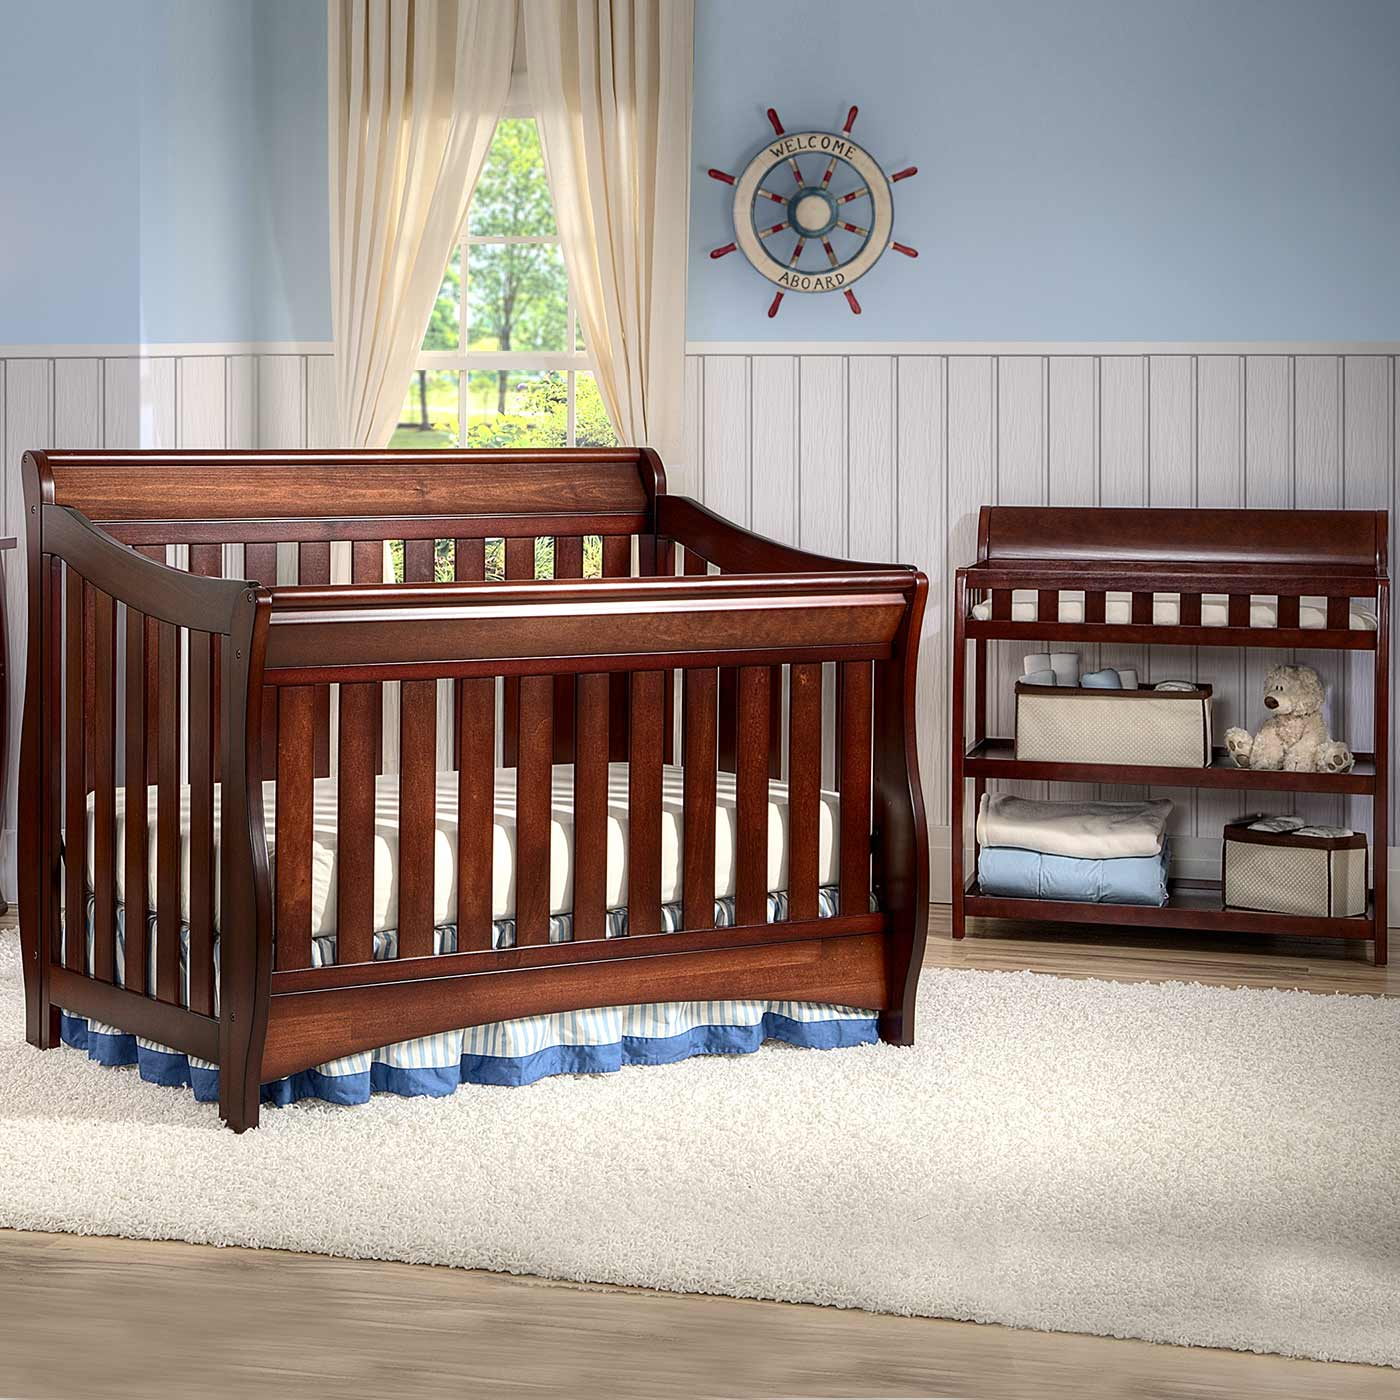 imagio pad changing in ba combo size table pertaining for x changer and chocolate ideas montville with crib to